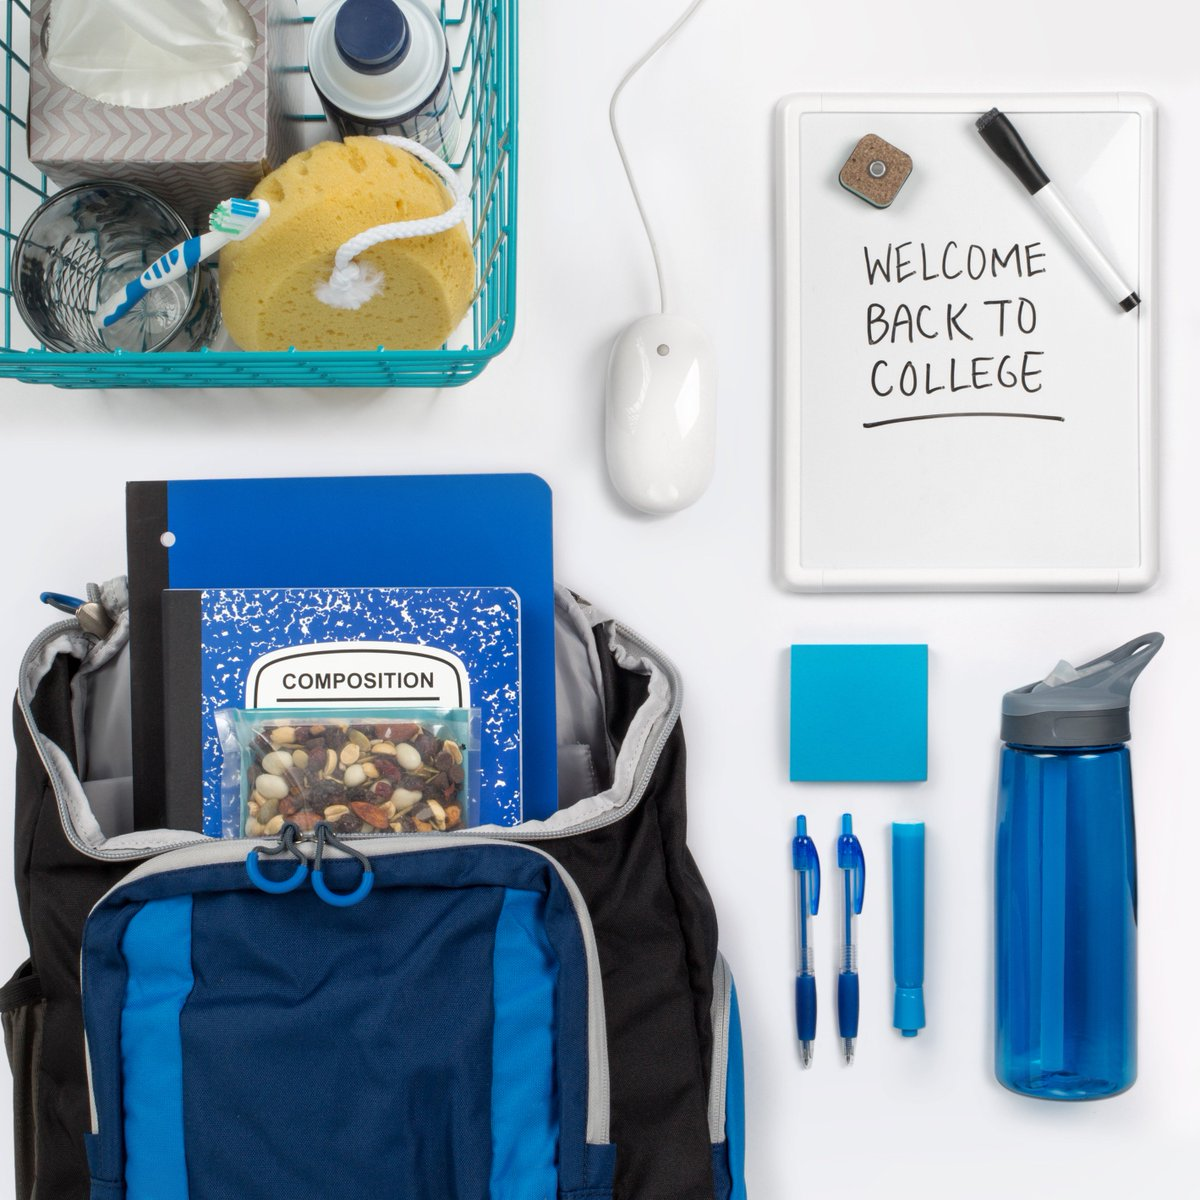 Get ready for another year of #college with this backpack and a gift card—just RT and follow for a chance to win! https://t.co/UtR7Rkbz2f